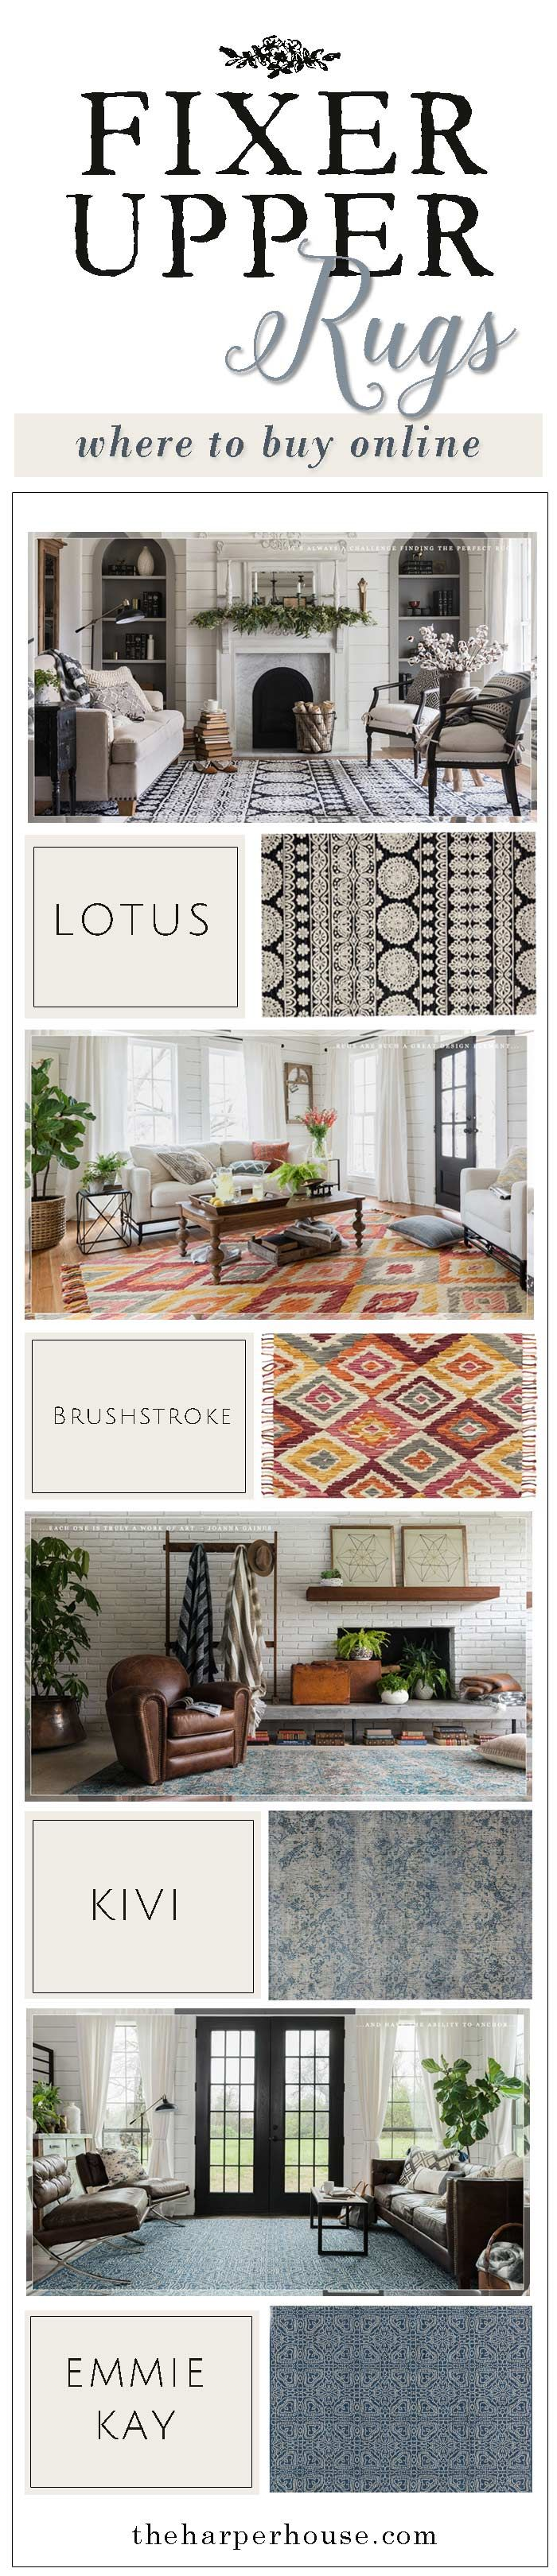 fixer upper rugs: where to buy online | * fixer upper style